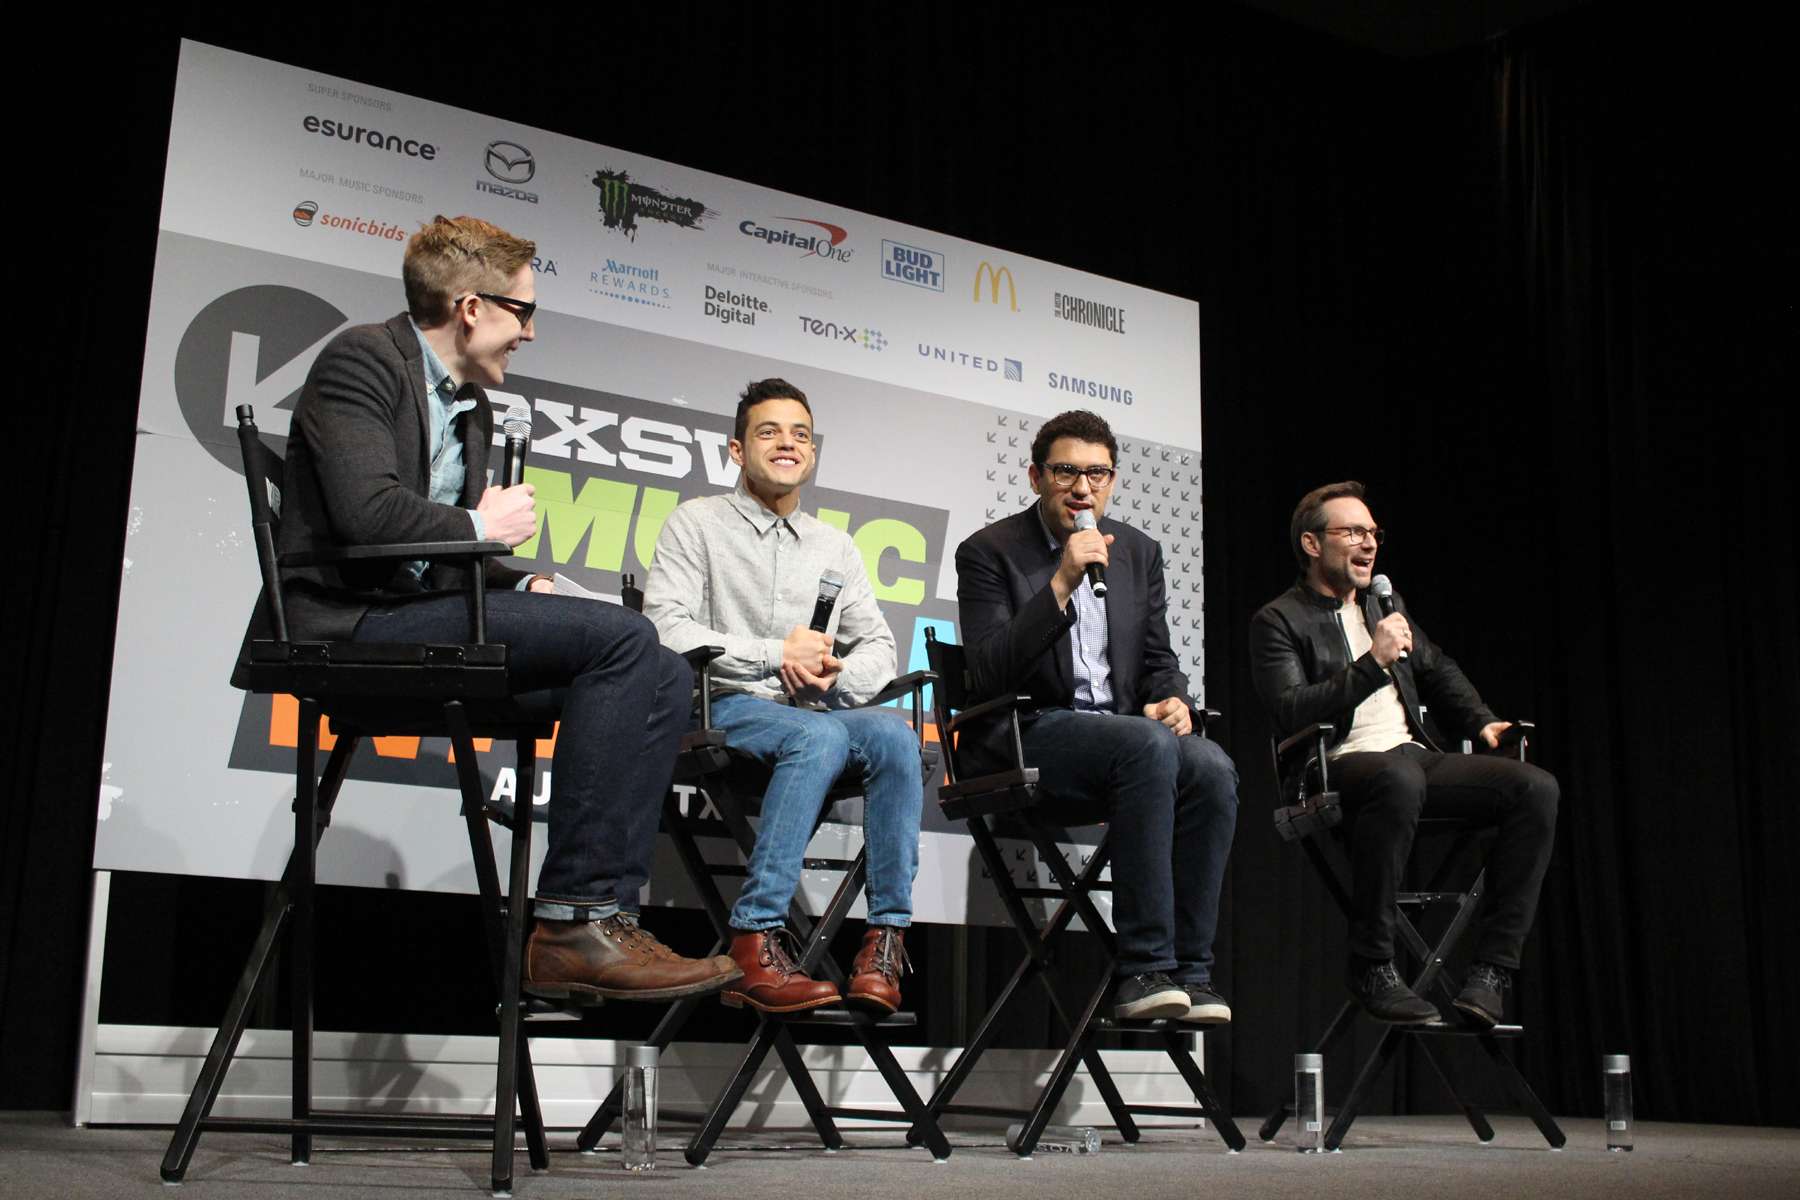 Mr. Robot Panel // Photo by Heather Kaplan